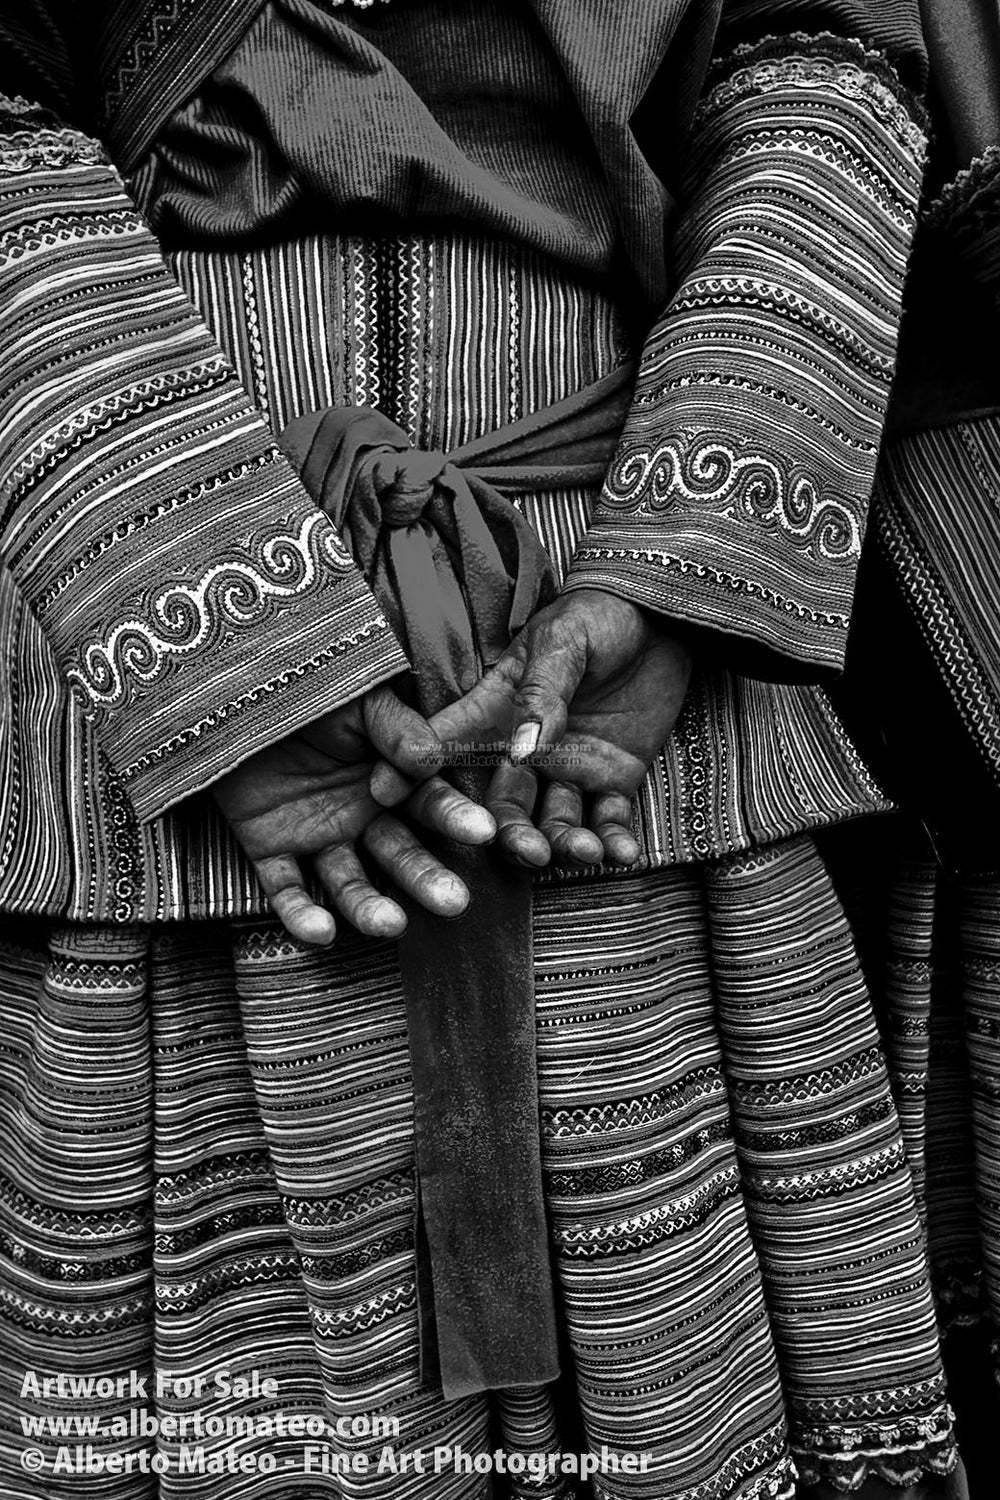 Detail of hands of a Hmong woman, Bac Ha, Vietnam. | Full view.